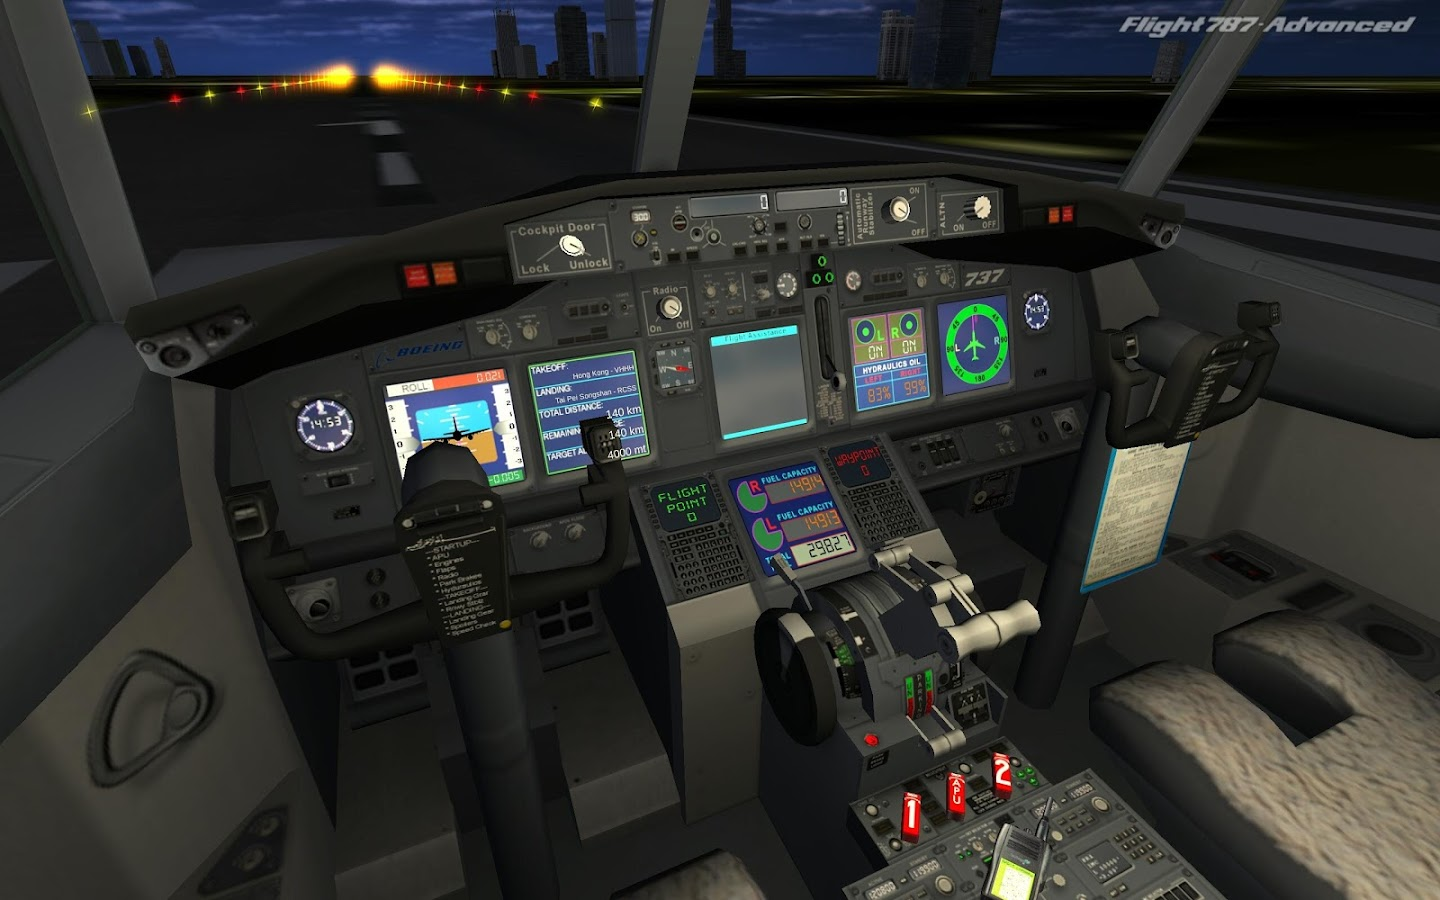 Flight 787 - Advanced Screenshot 17